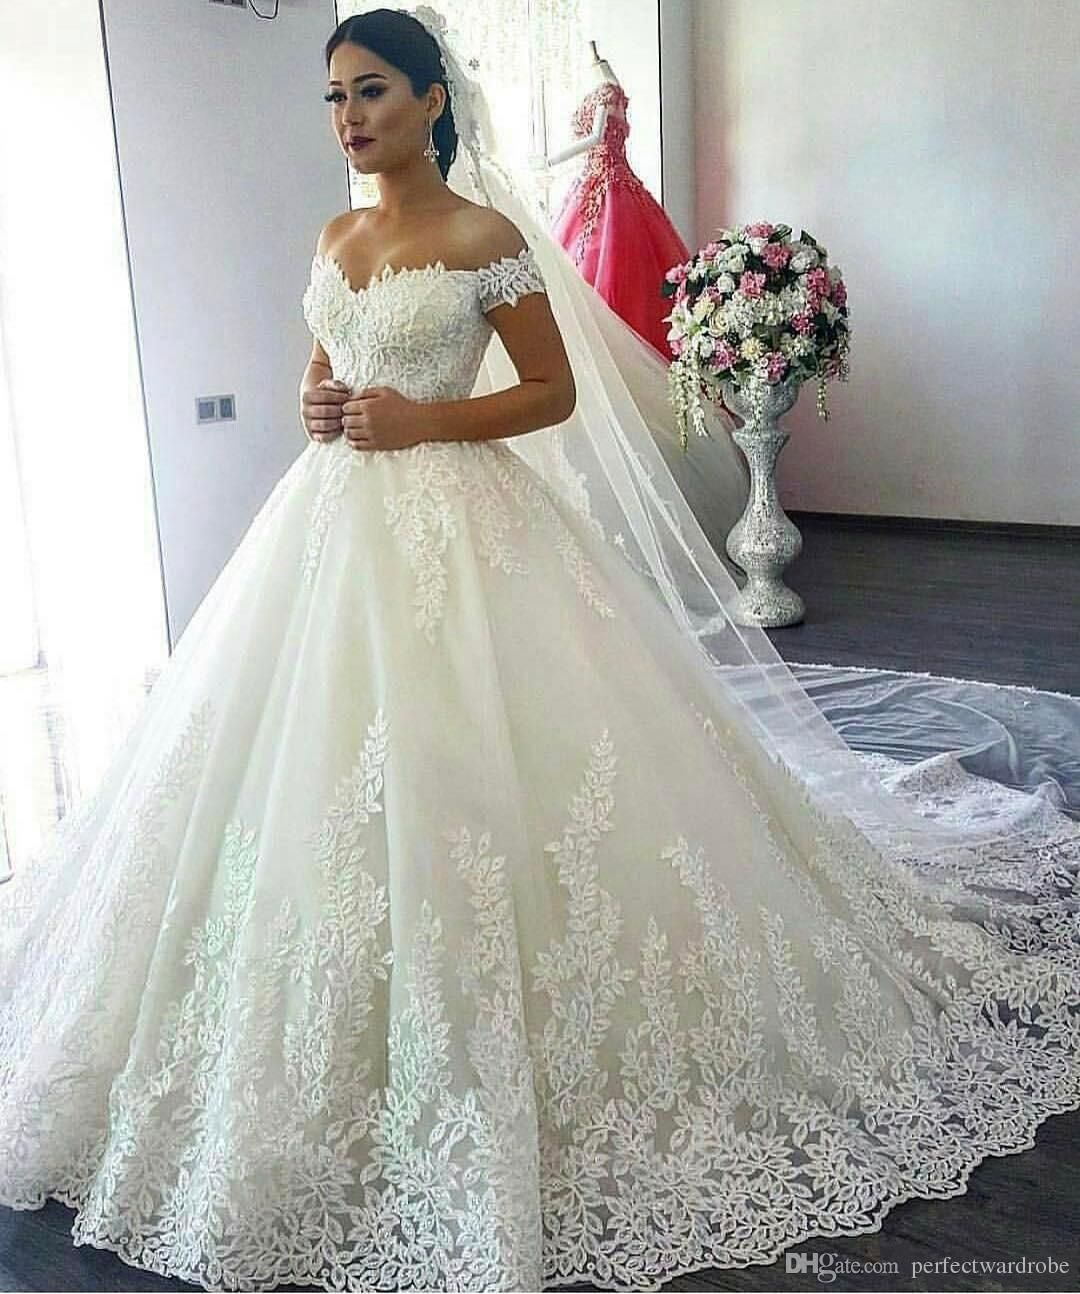 2018 Portuguese Wedding Dress Designers Dresses For Guests Check More At Http